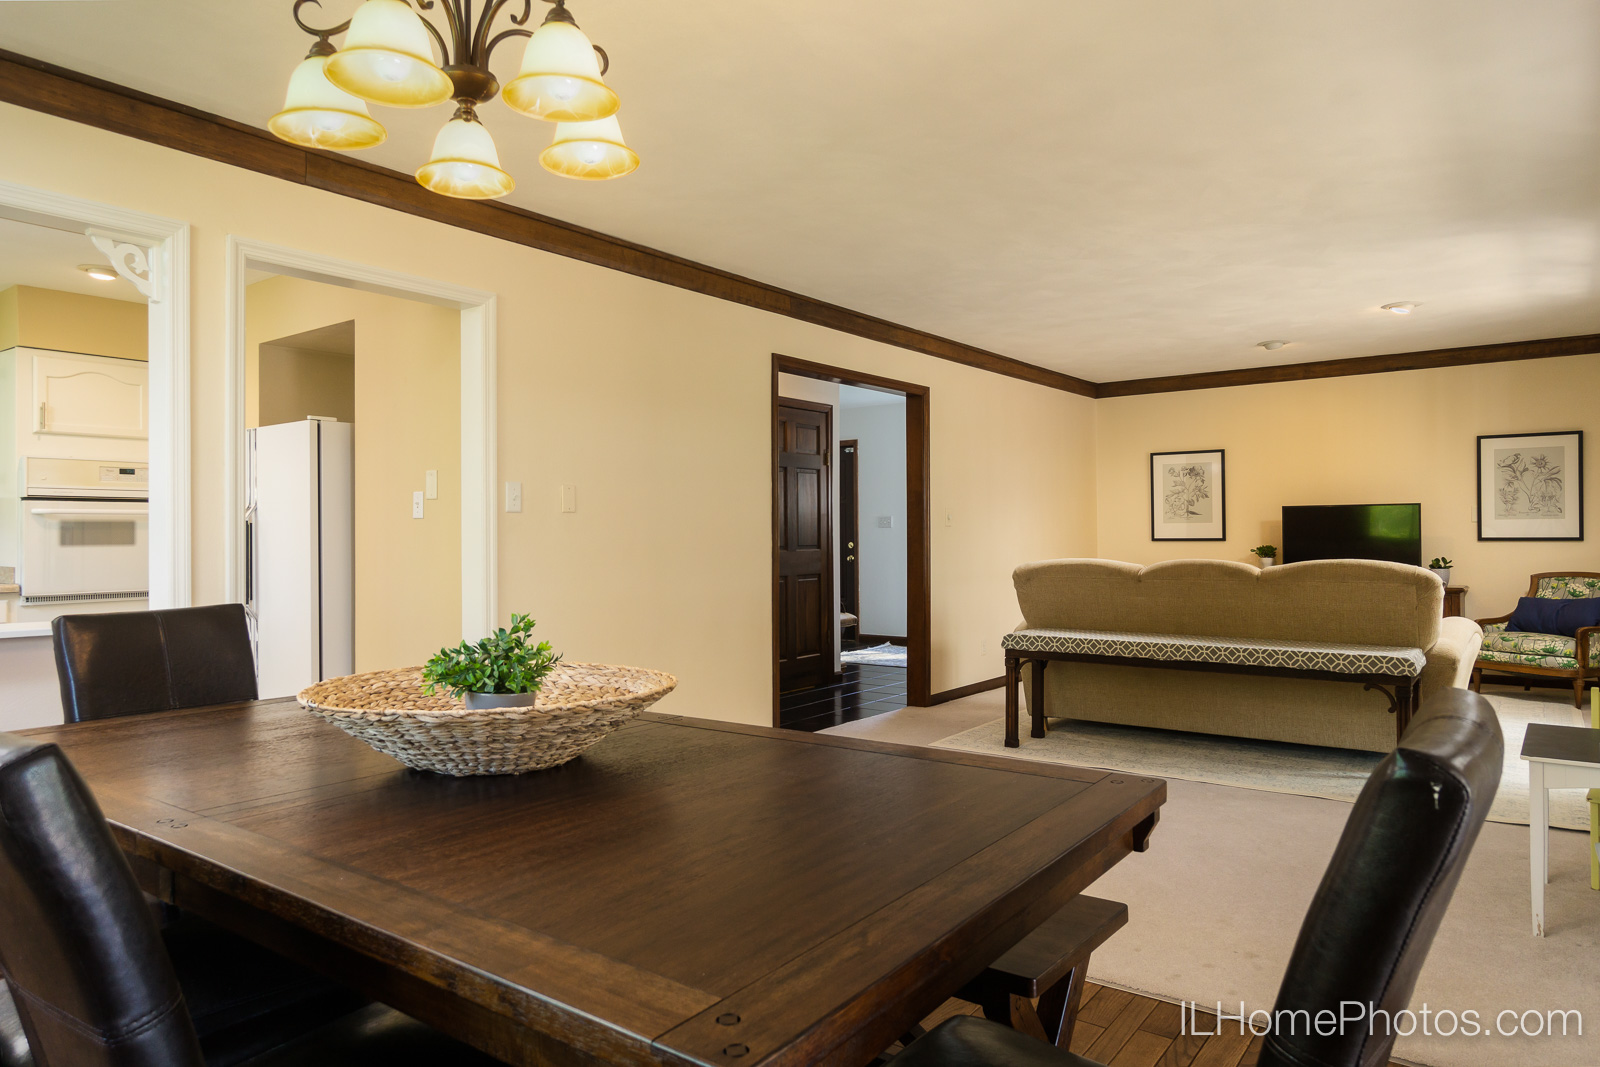 Interior dining room and living room photograph for real estate in Chillicothe, IL :: Illinois Home Photography by Michael Gowin, Lincoln, IL